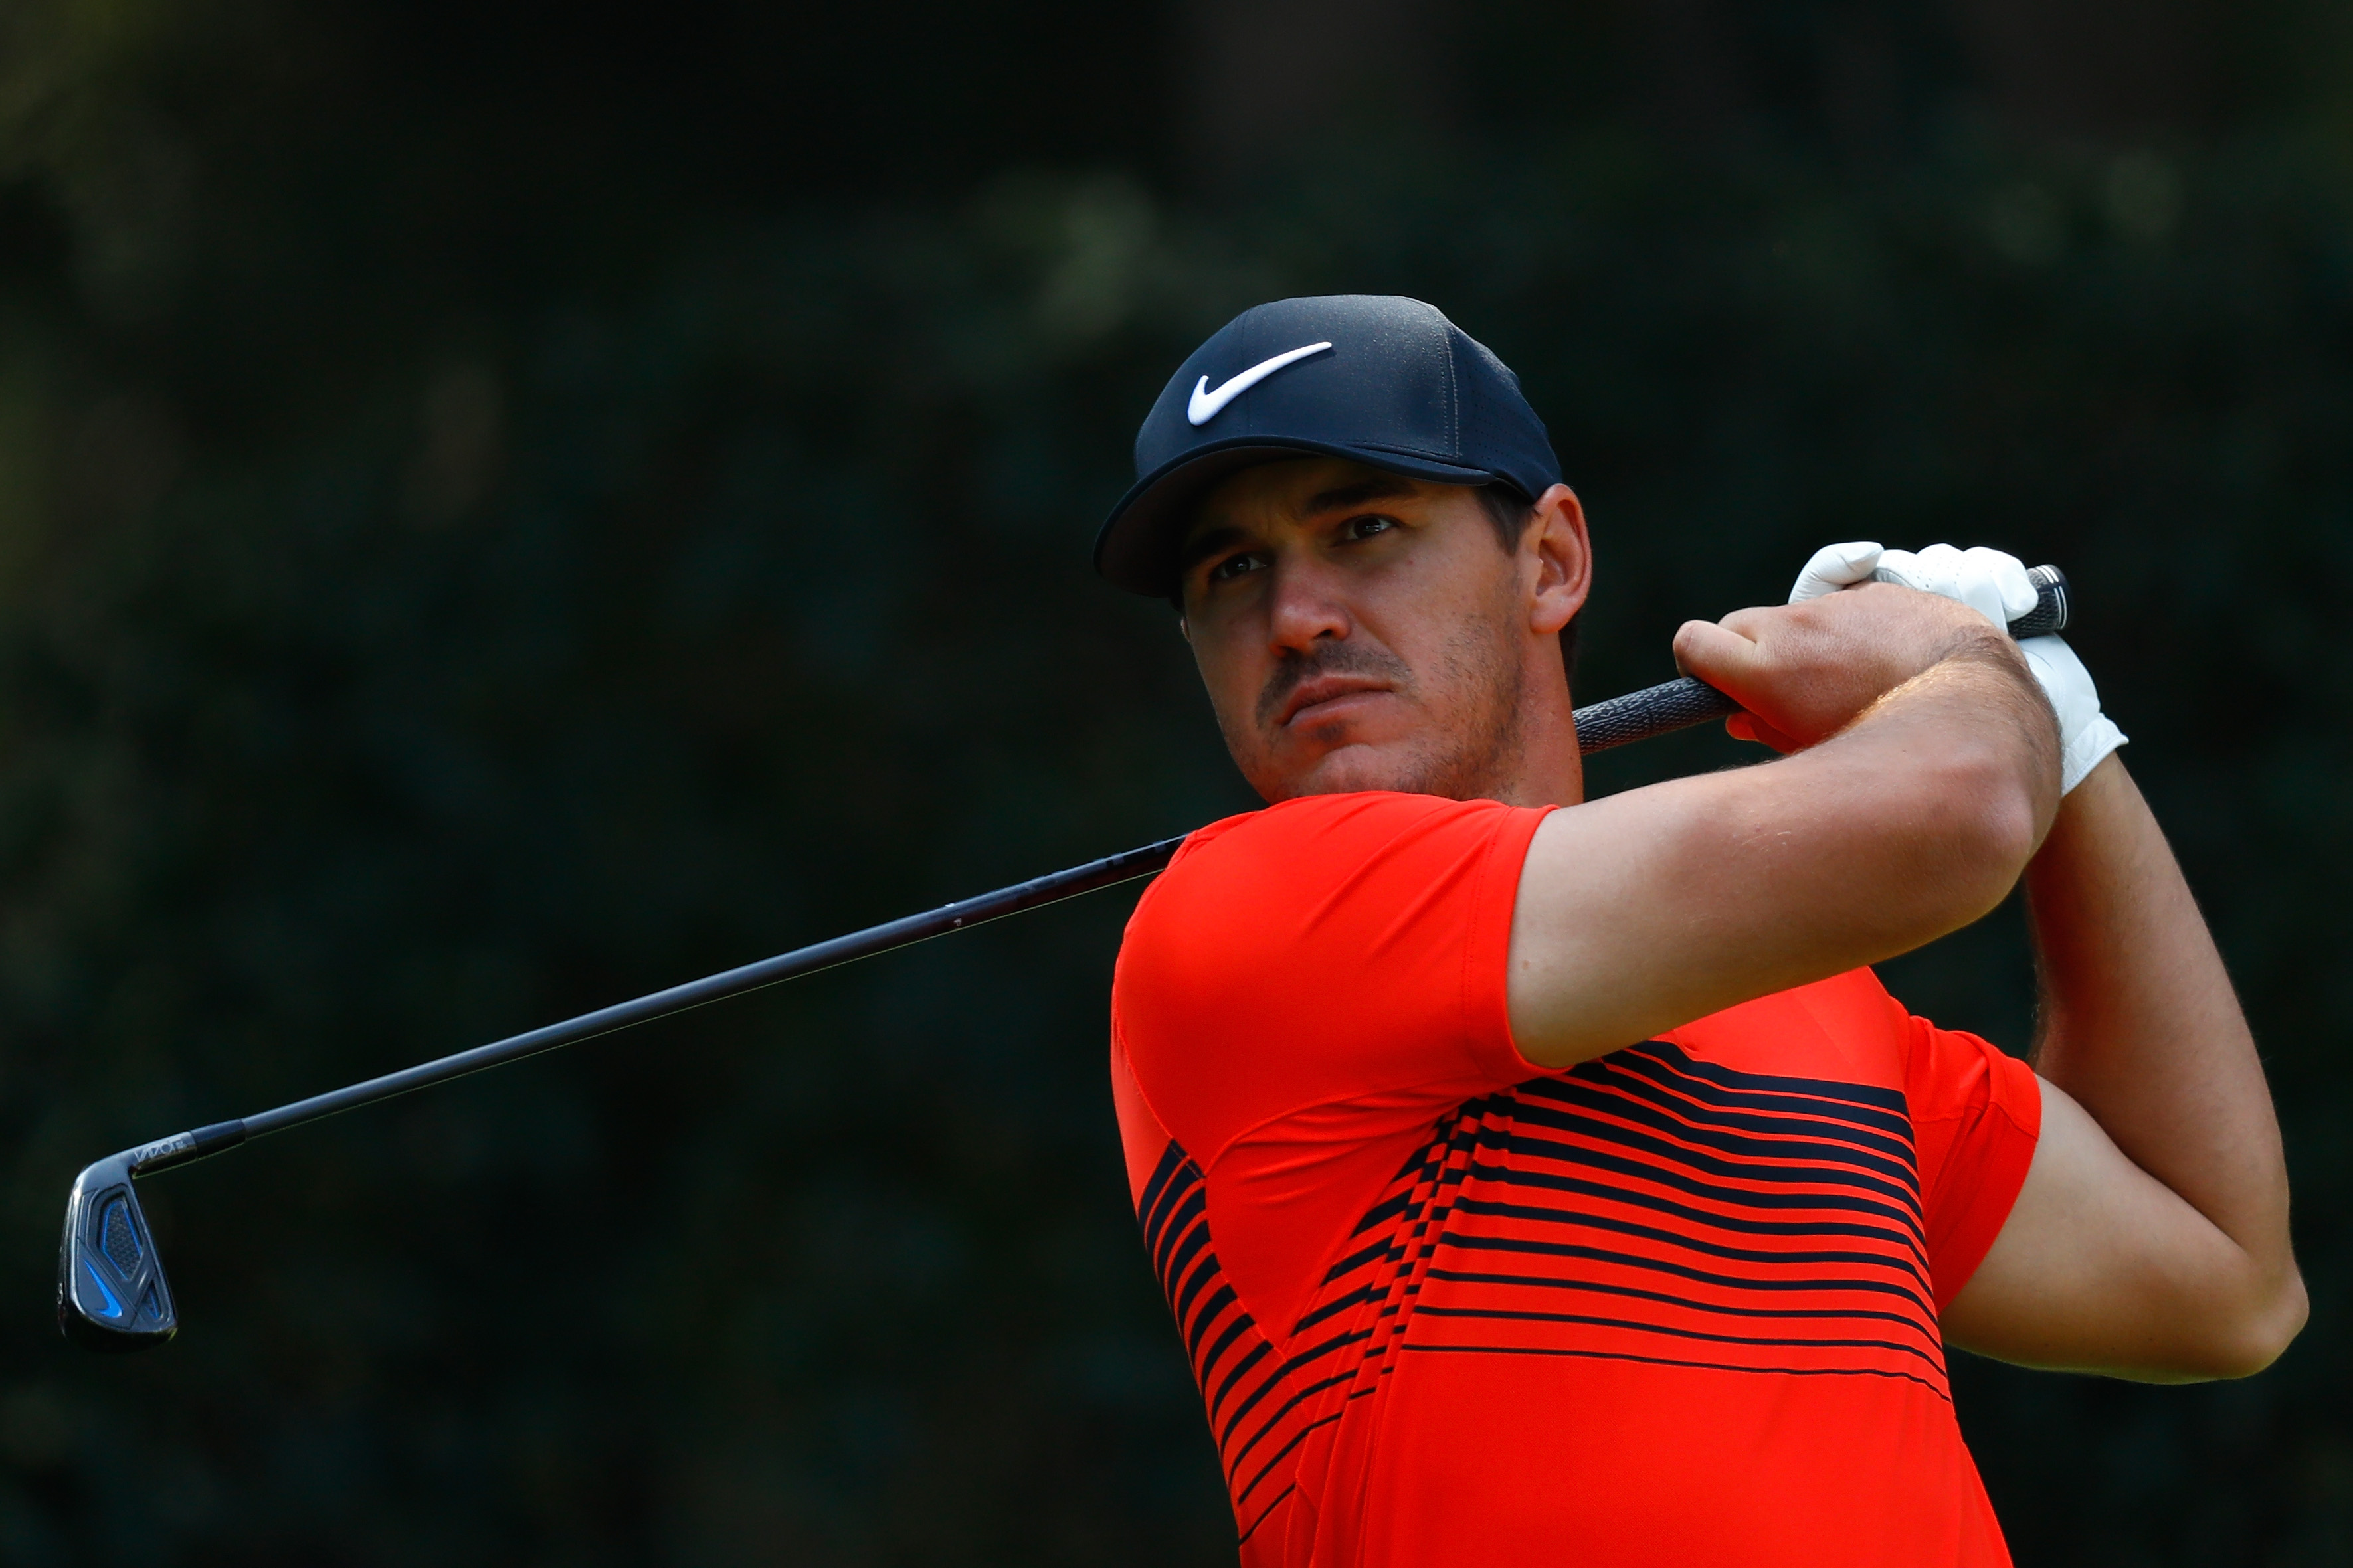 Koepka battled a neck injury at Augusta in 2016 and was still able to tie for 21st.